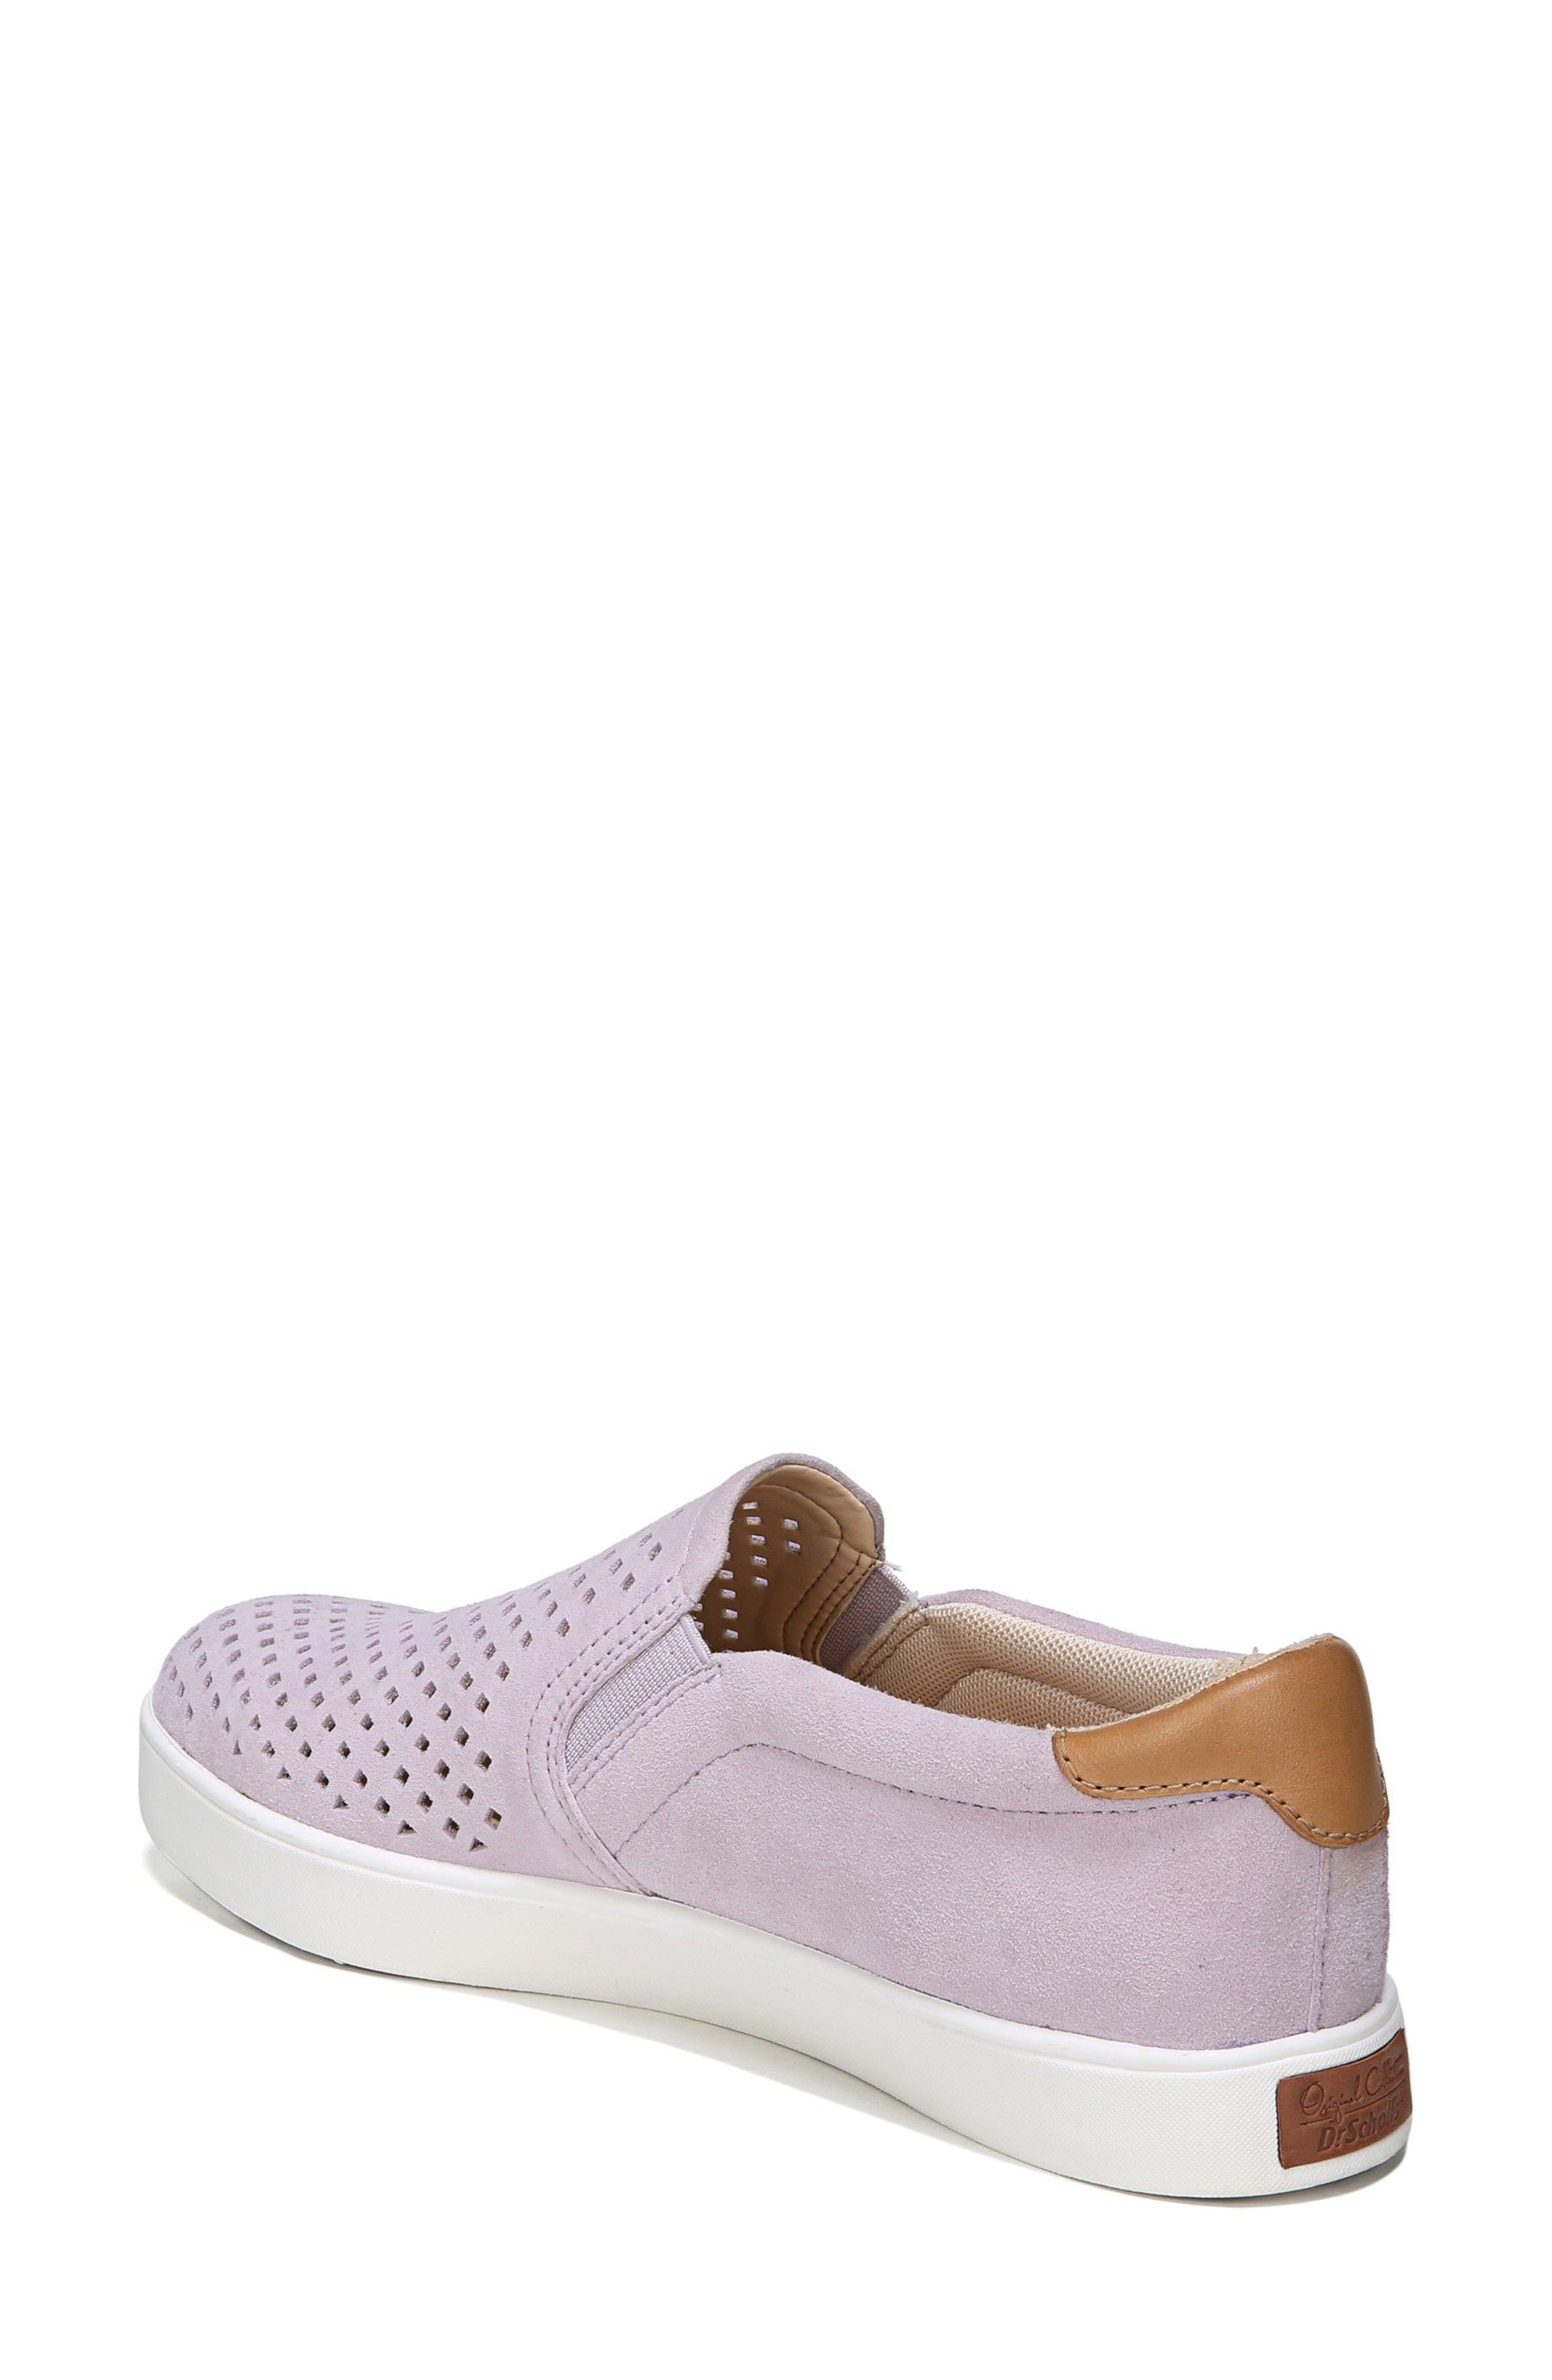 Original Collection 'Scout' Slip On Sneaker,                             Alternate thumbnail 41, color,